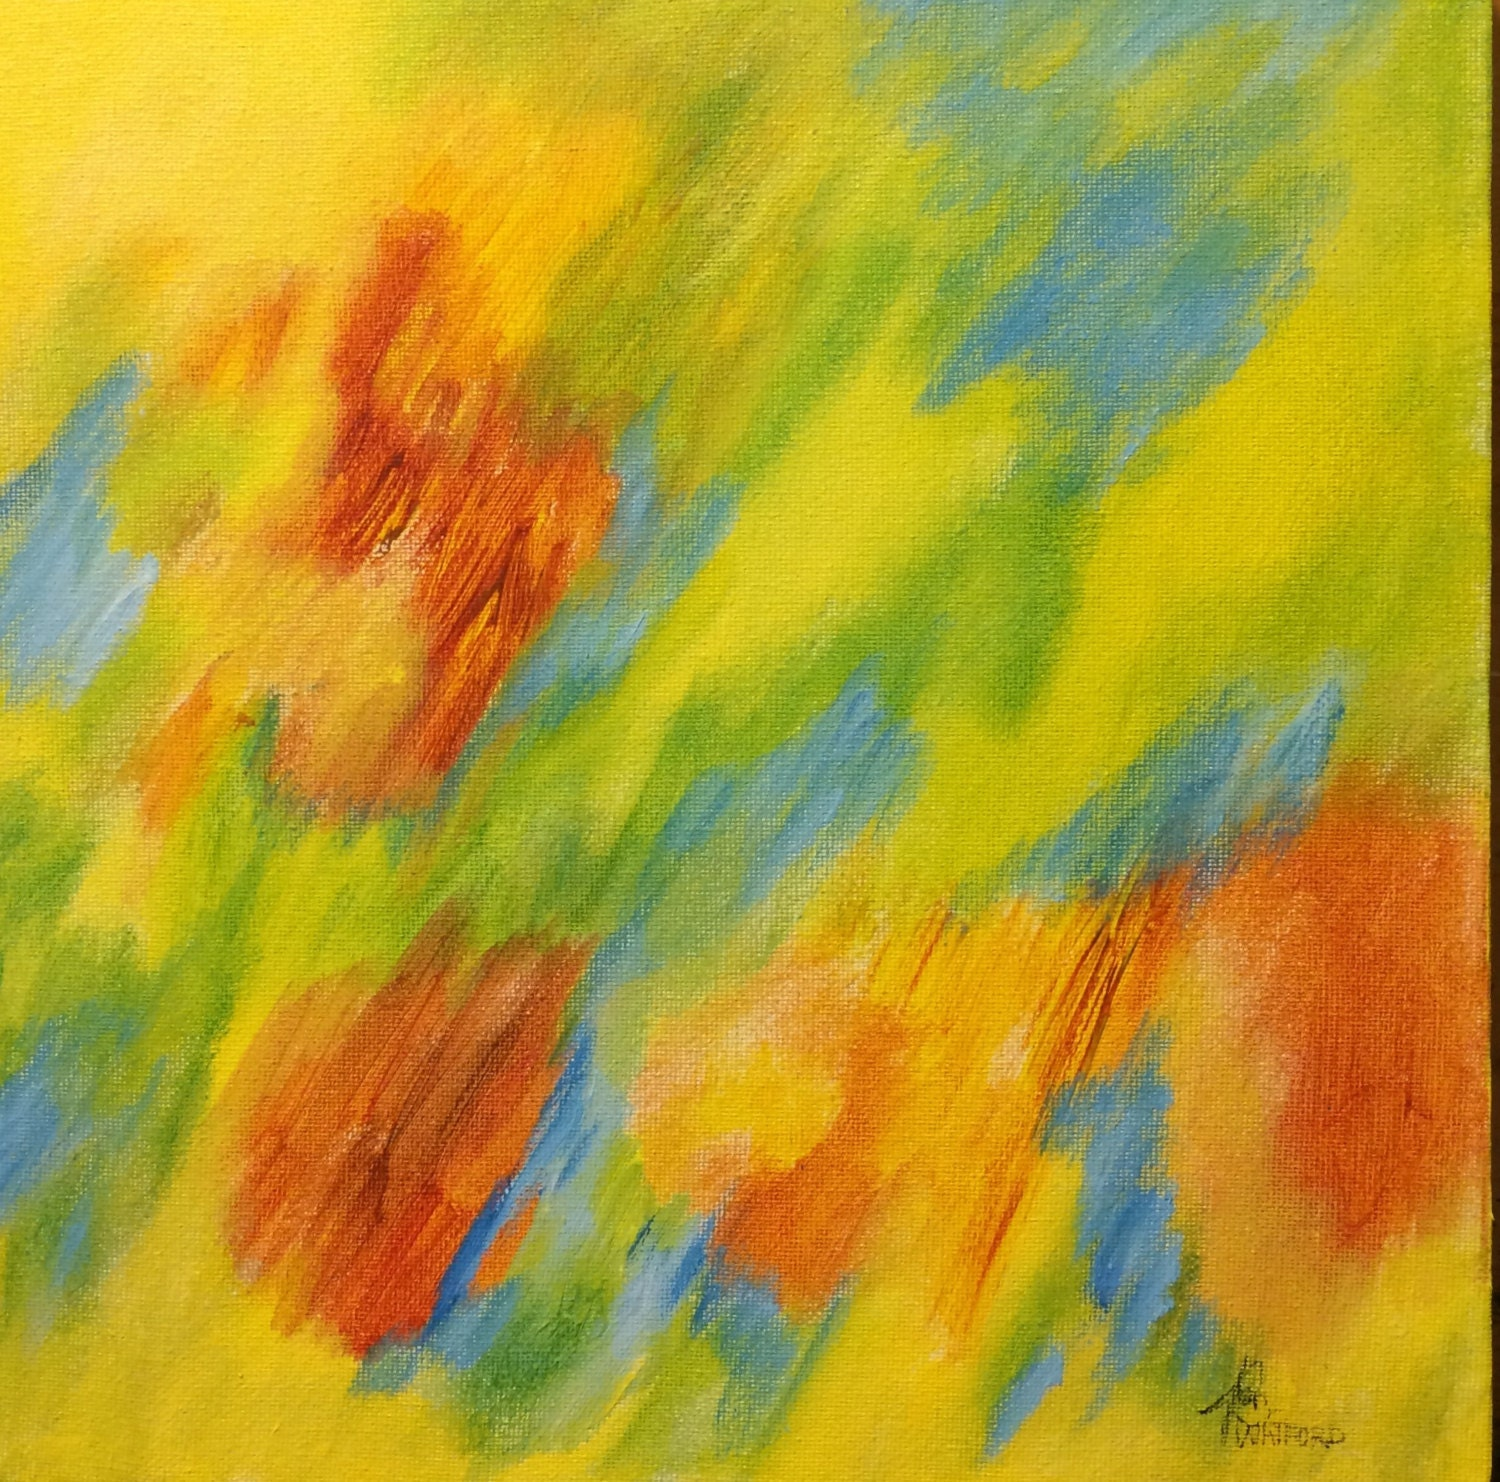 orange yellow lt blue abstract painting abstract art. Black Bedroom Furniture Sets. Home Design Ideas